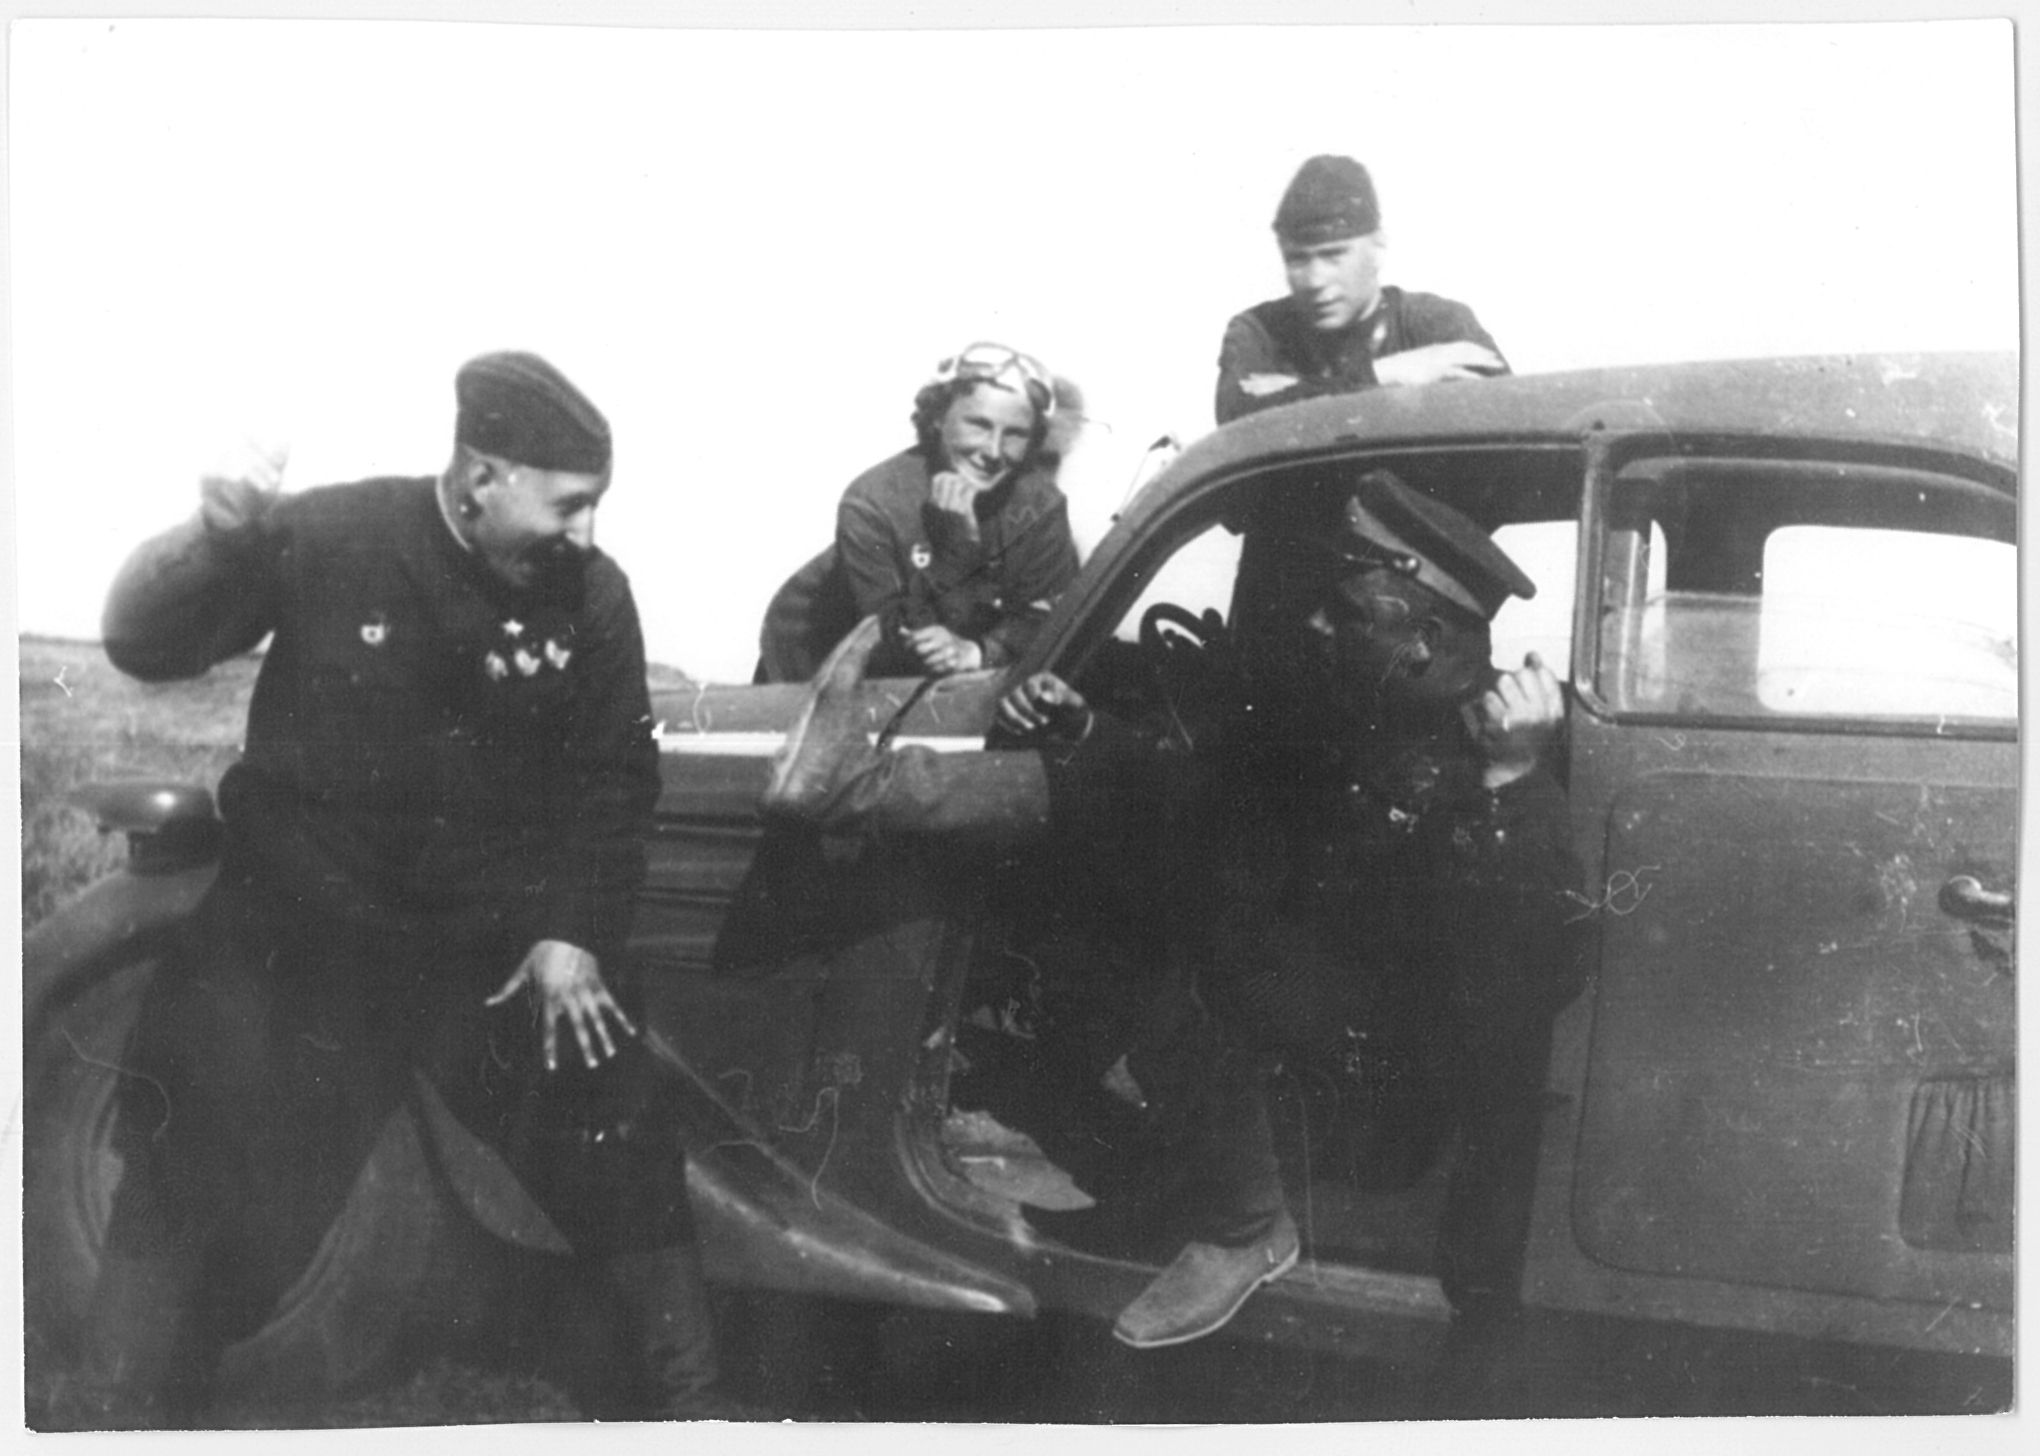 Sasha Martynov, Nikolai Baranov, Lilya and Salomatin. Was almost certainly taken in early May 1943